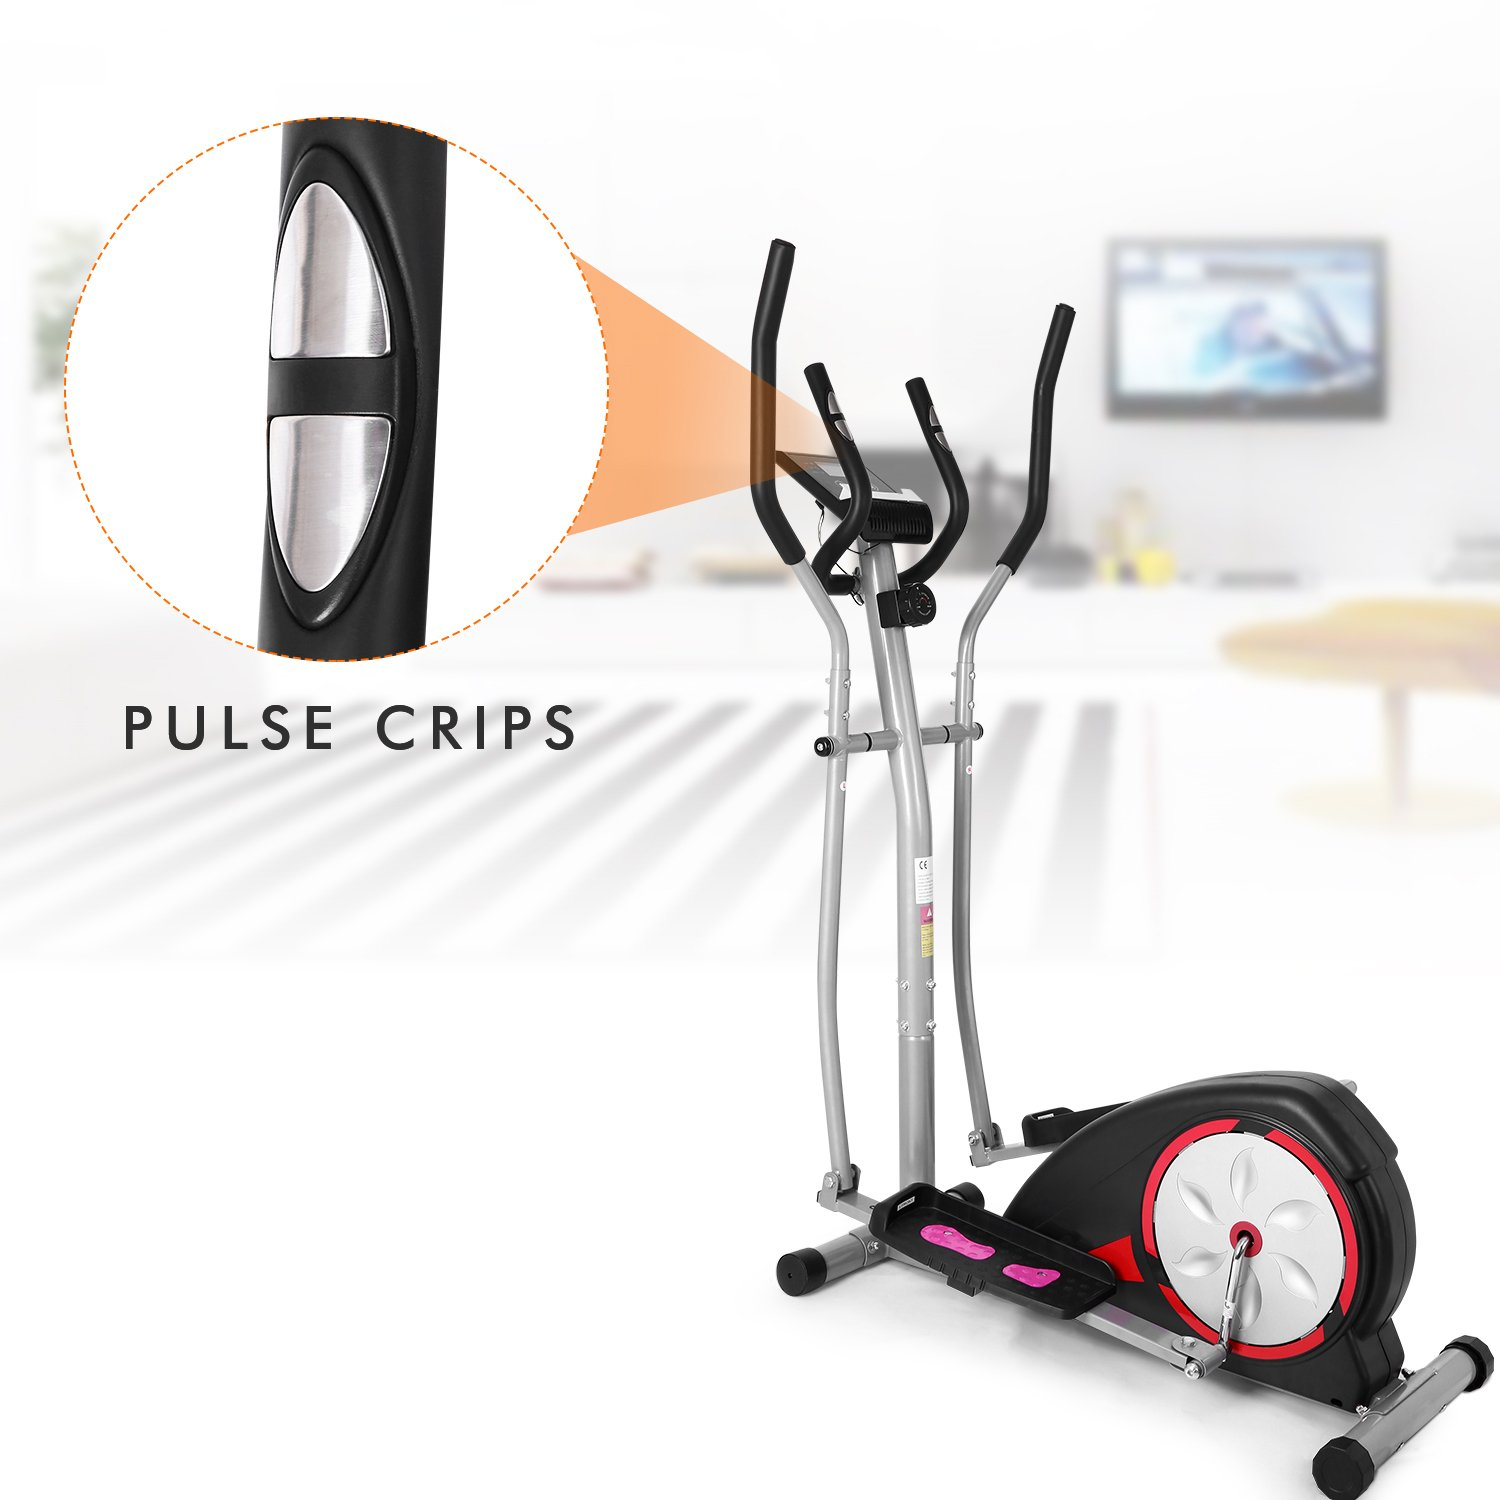 Aceshin Elliptical Machine Trainer Compact Life Fitness Exercise Equipment for Home Workout Offic Gym (Gray2) by Aceshin (Image #4)